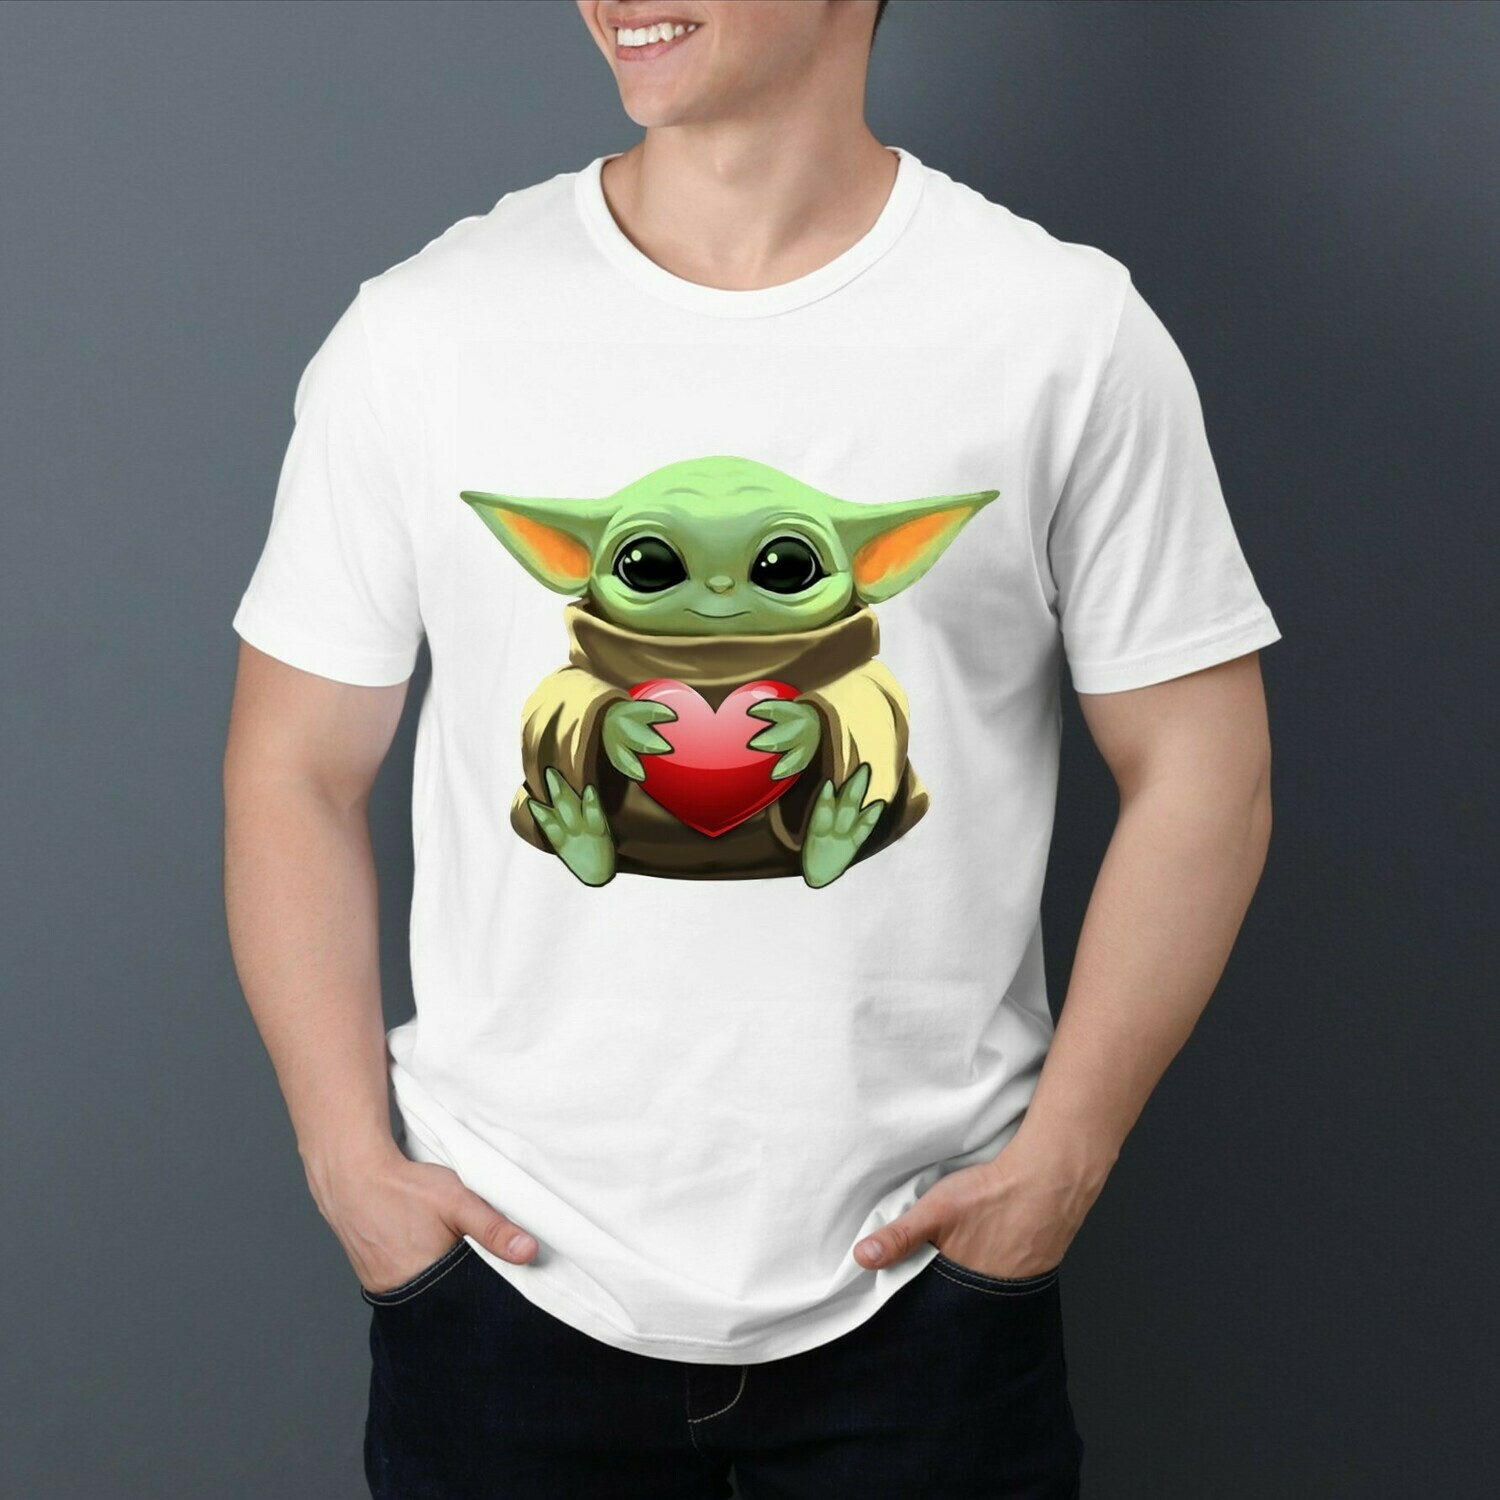 Baby Yoda The Mandalorian with death Star Wars Movie Yoda Hug Heart Valentines Gift for her him girlfriend T-Shirt Hoodie Sweatshirt Sweater Tee Kids Youth Gifts Jolly Family Gifts